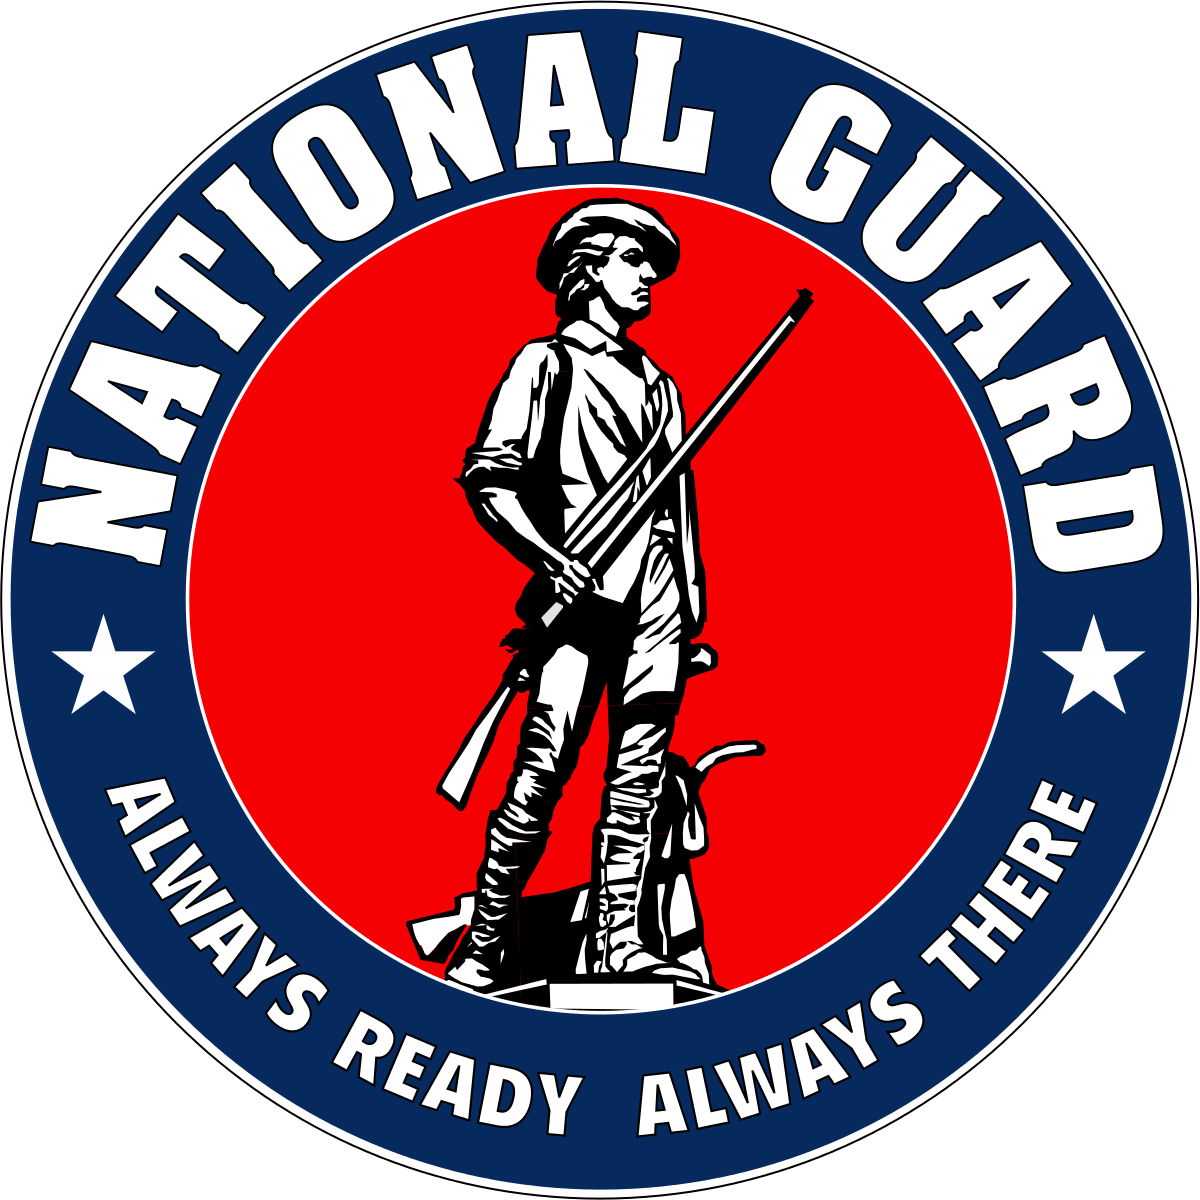 National Guard of the United States.